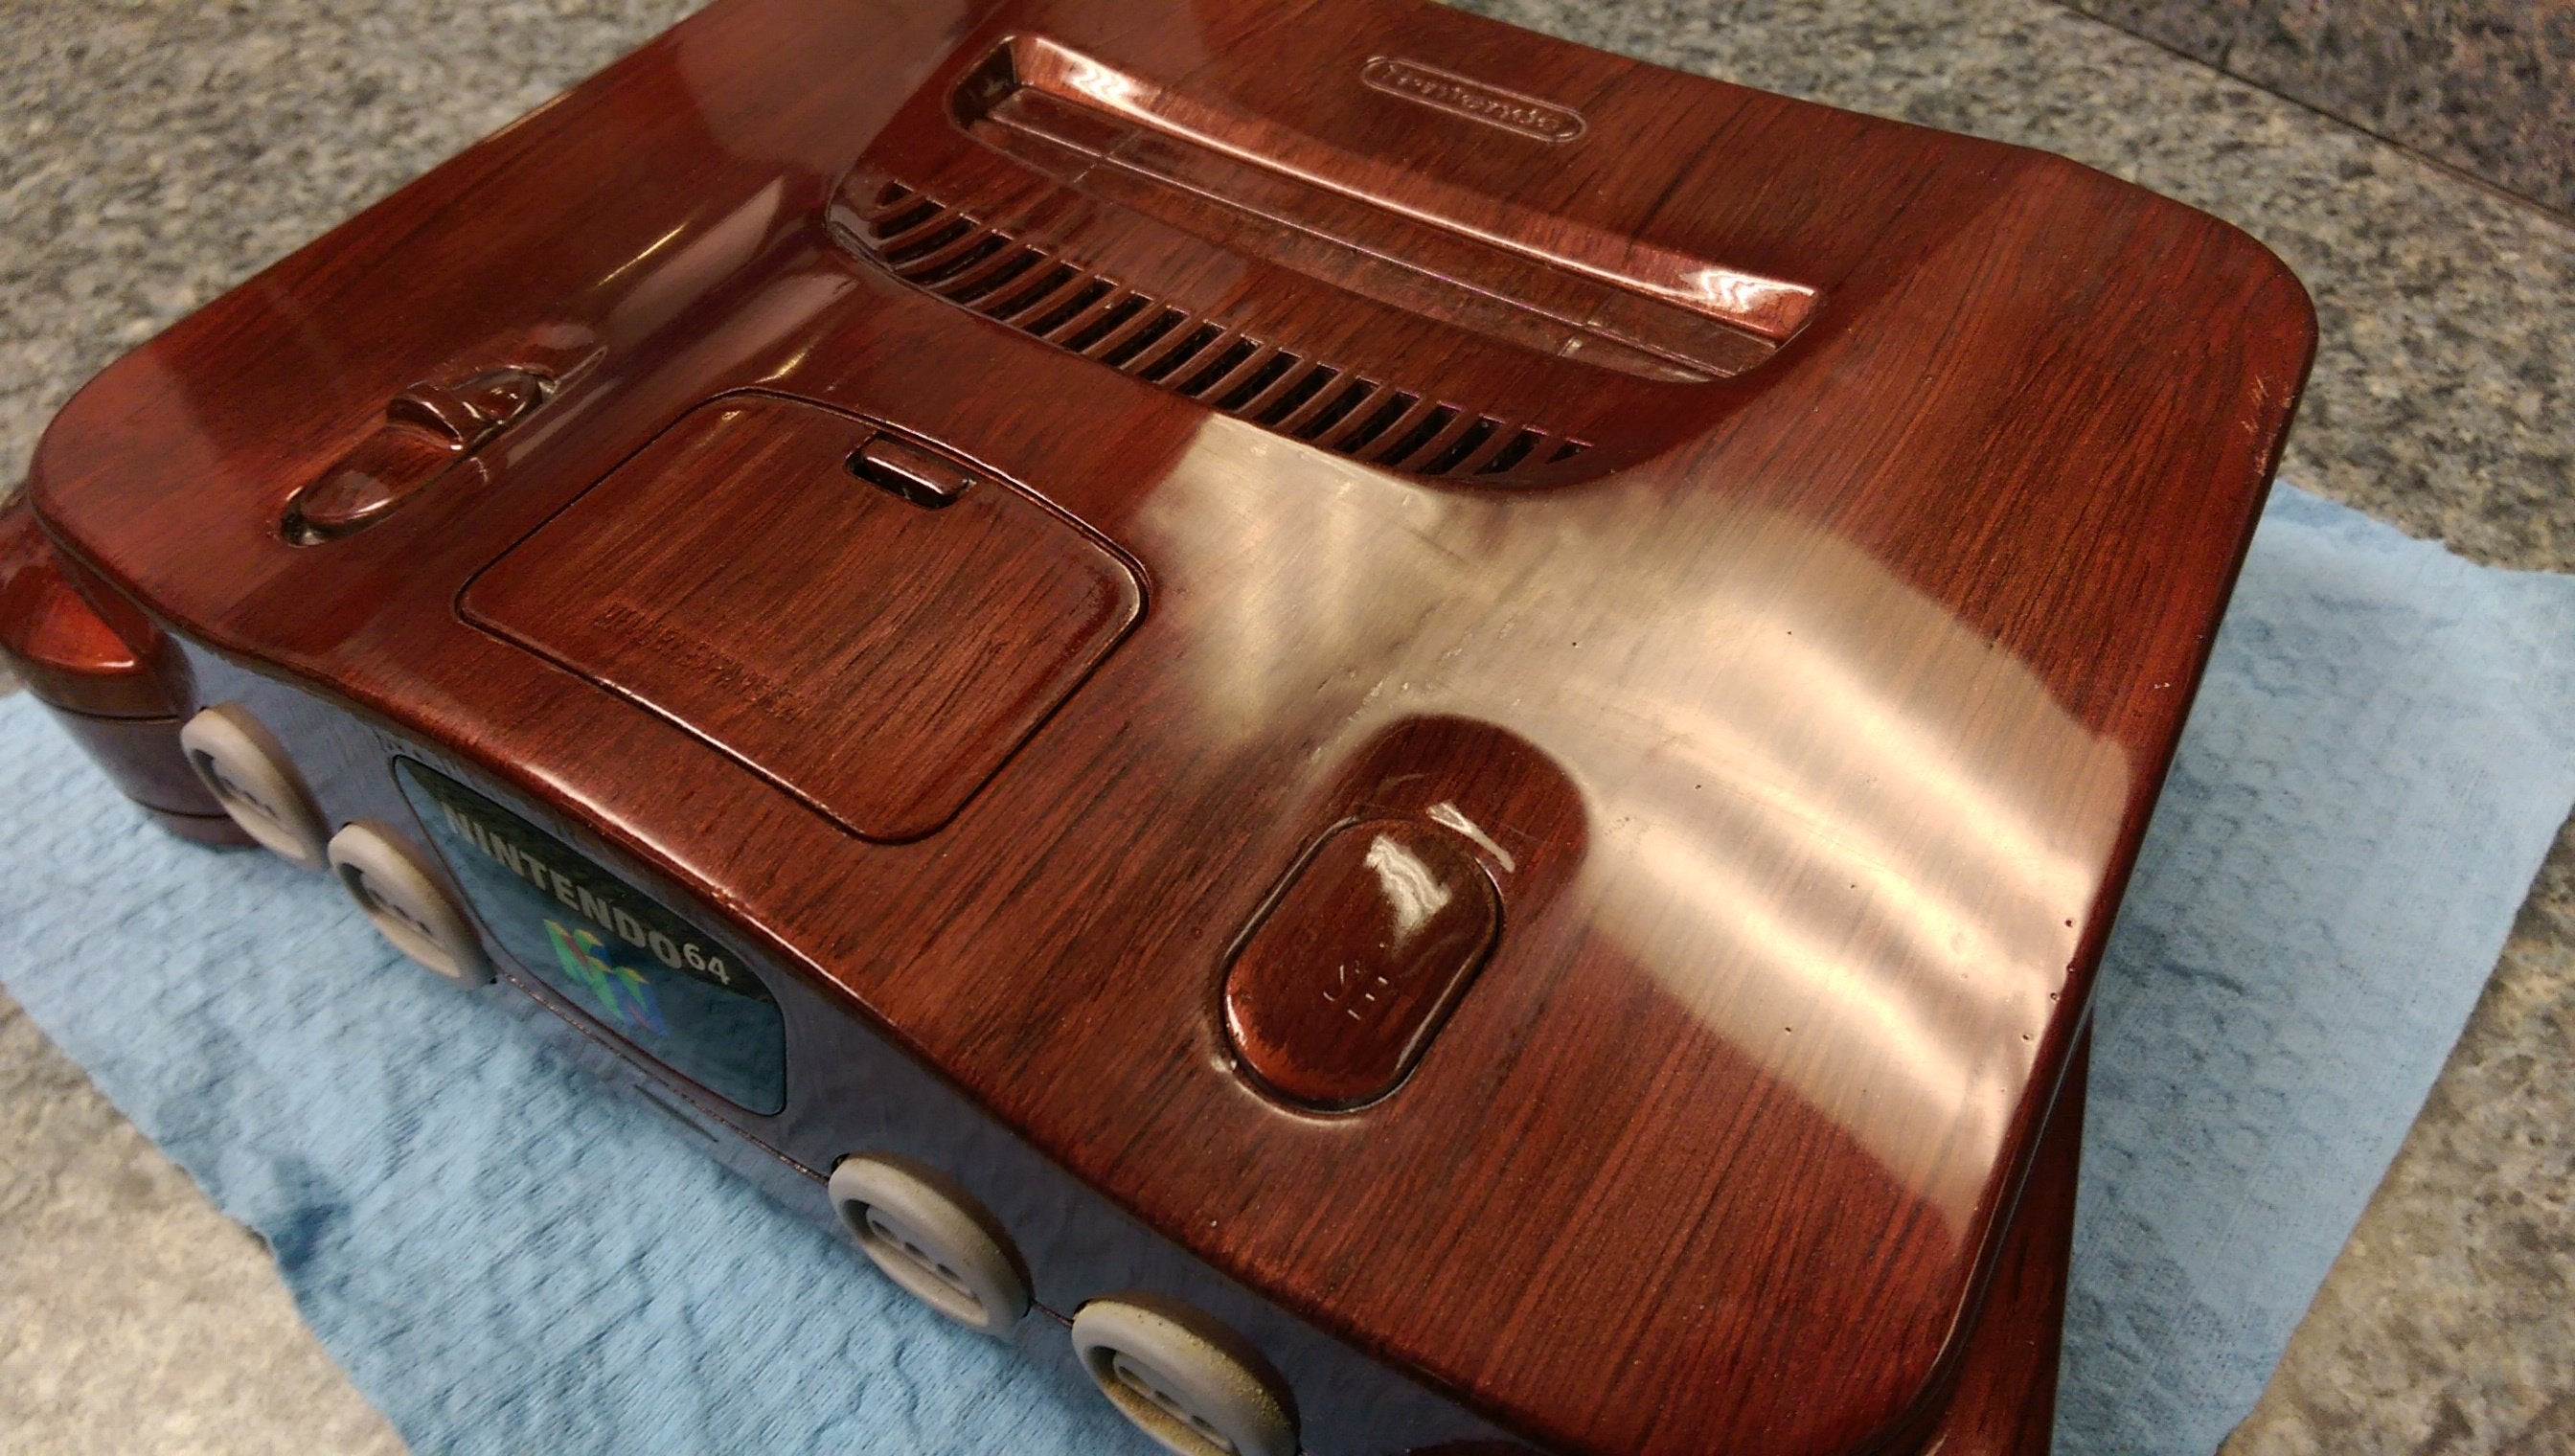 'Wooden' N64 Is Quaint As Hell